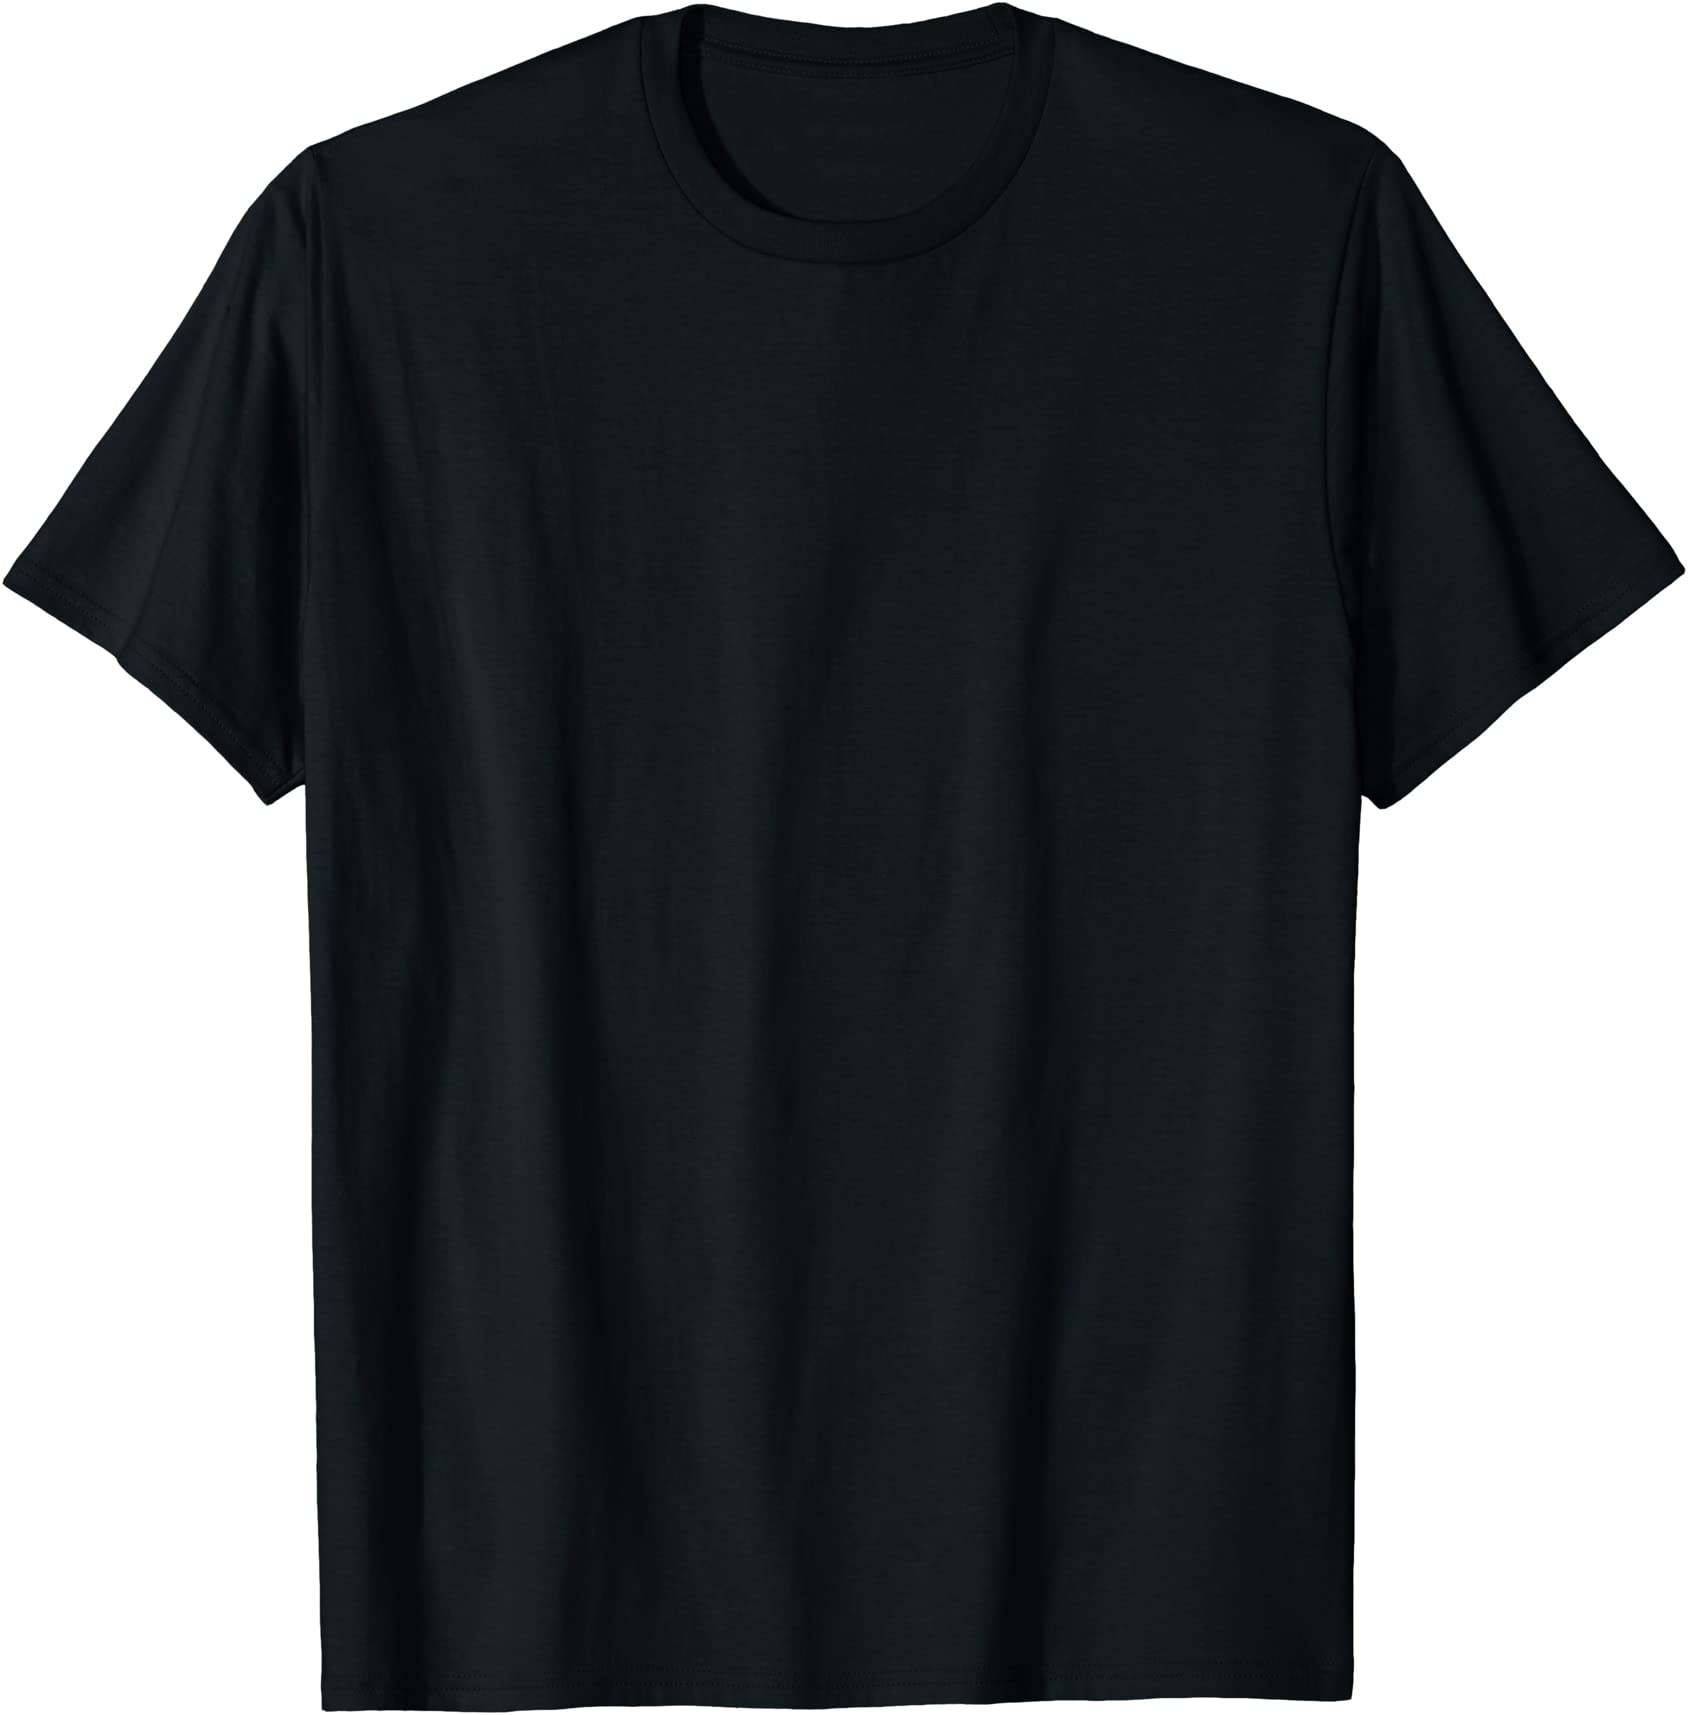 DYONG Short Sleeve Crew Neck T-Shirt for Teenagers Popular Soft Collection Tees